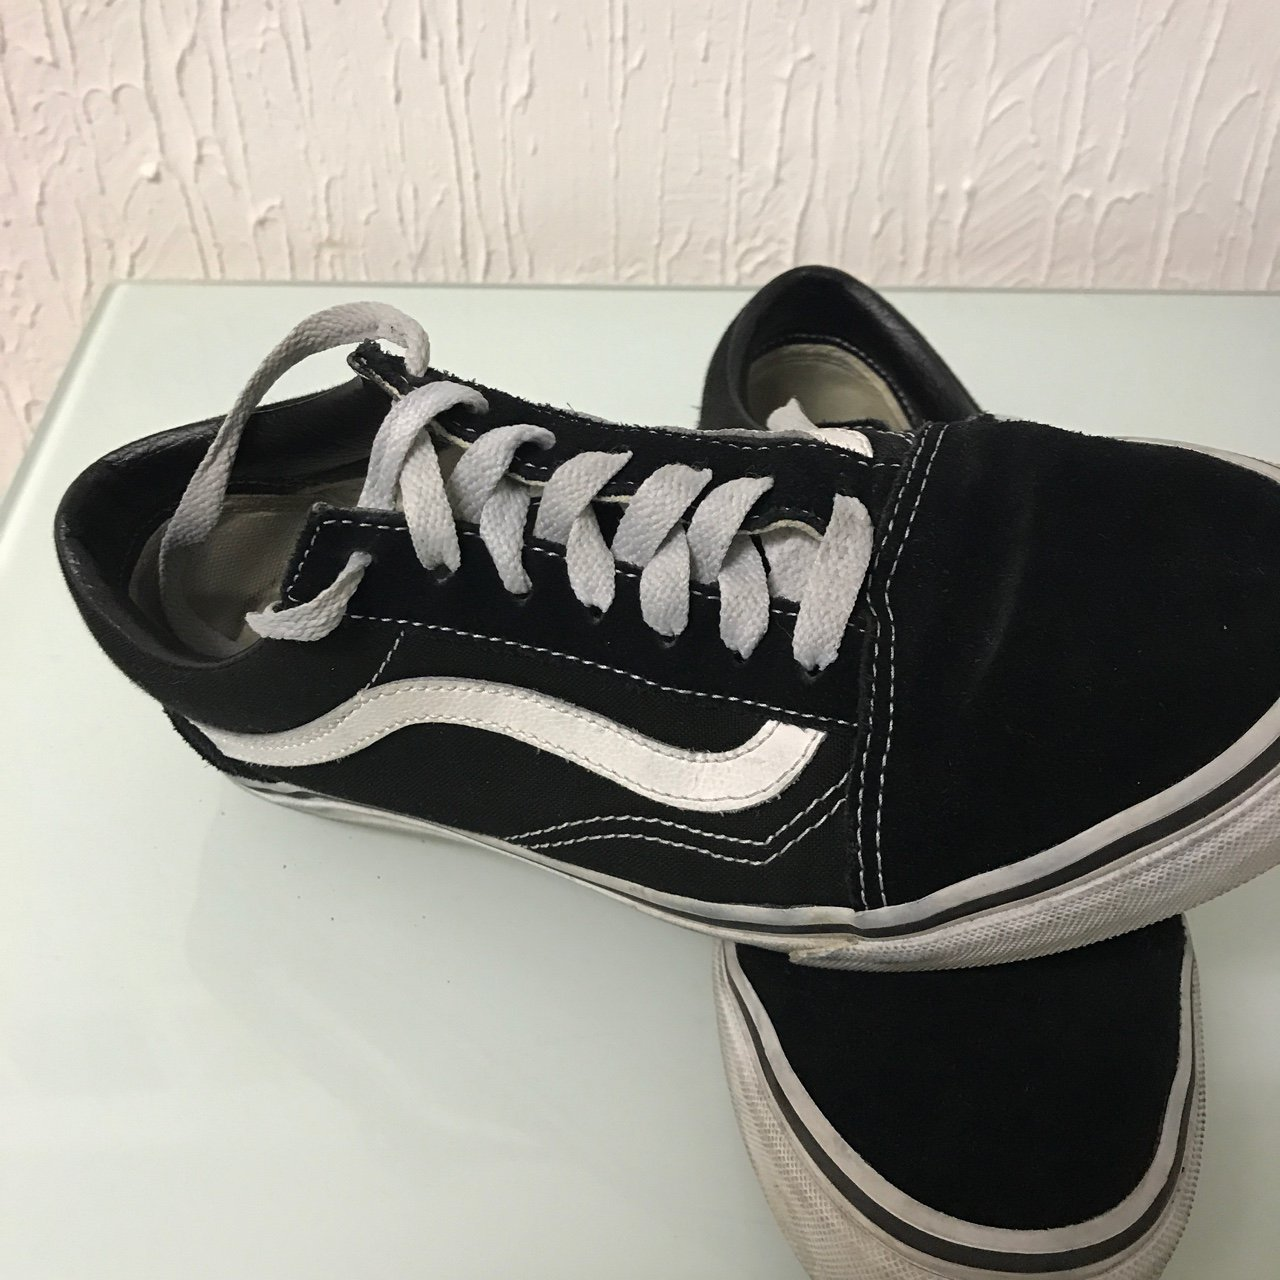 Old Skool Vans Size 5 UK Worn a couple of times but no fit - Depop 7879913aa